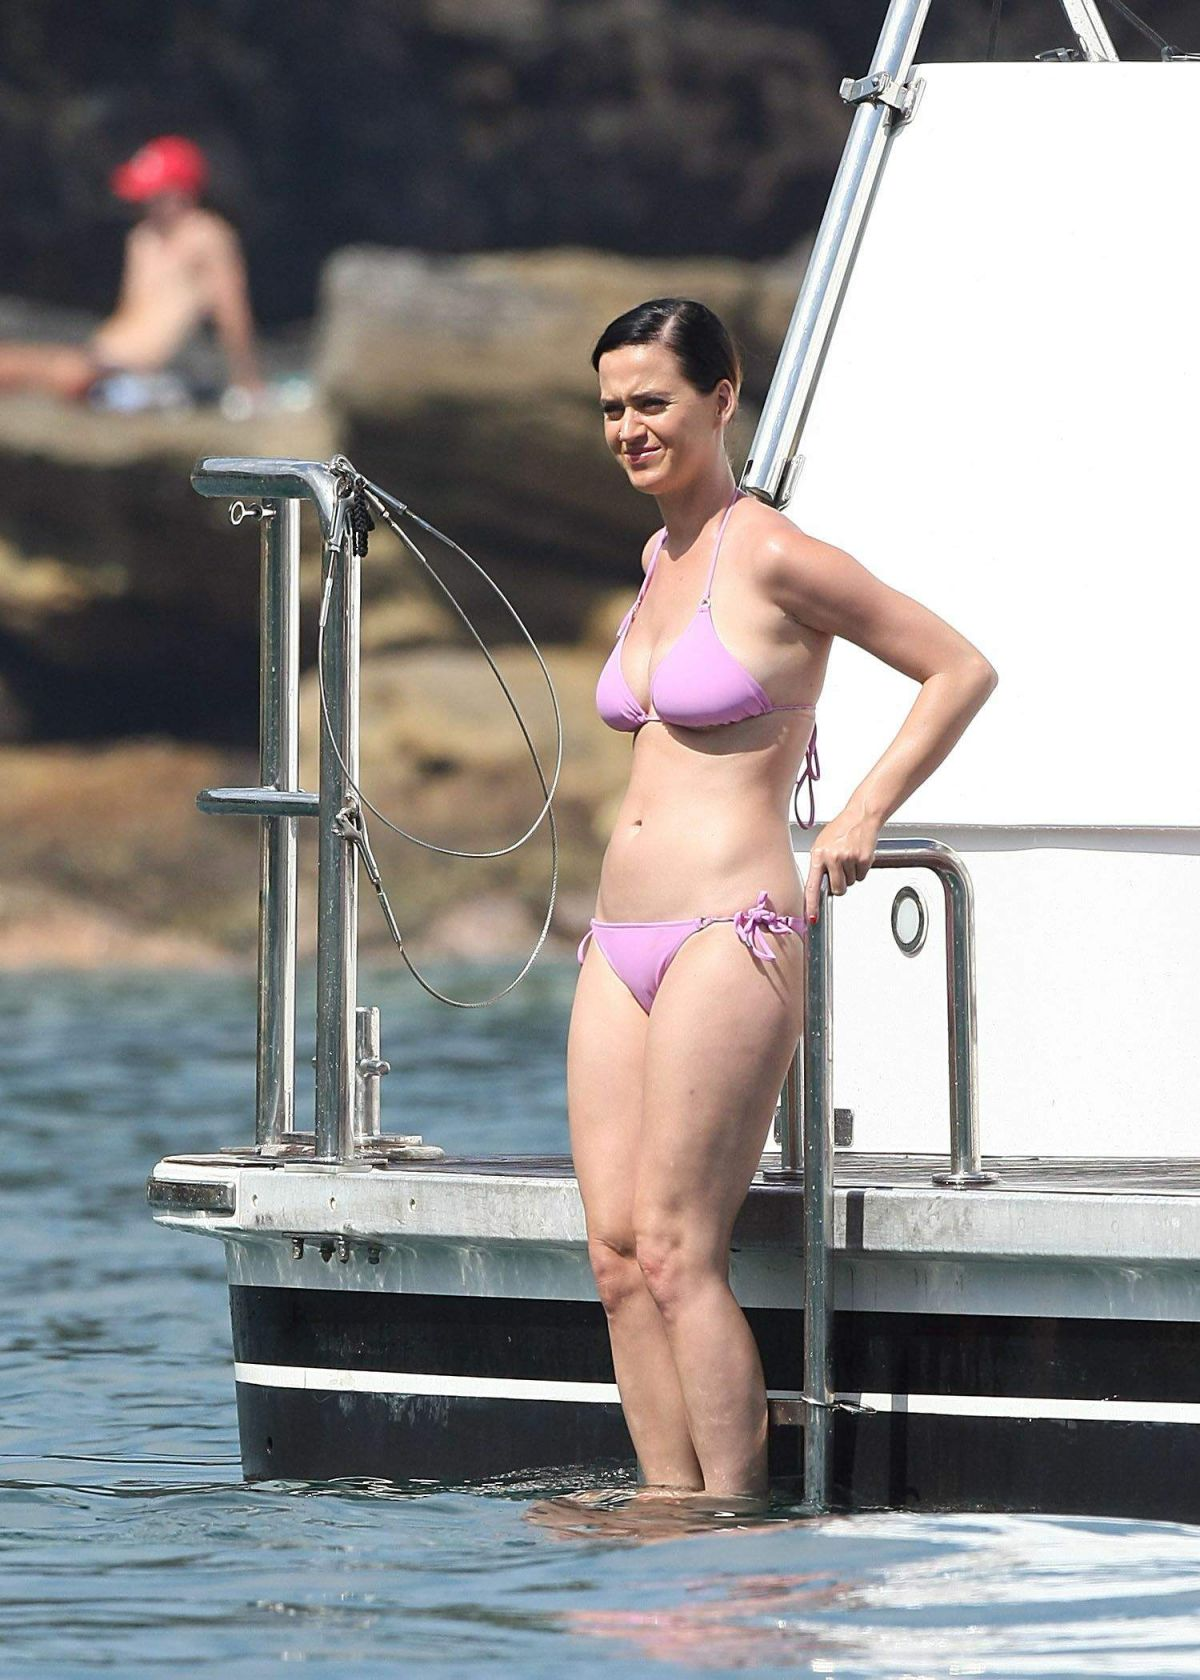 KATY PERRY in Pink Bikini at a Boat in Sydney's Harbour - HawtCelebs ...